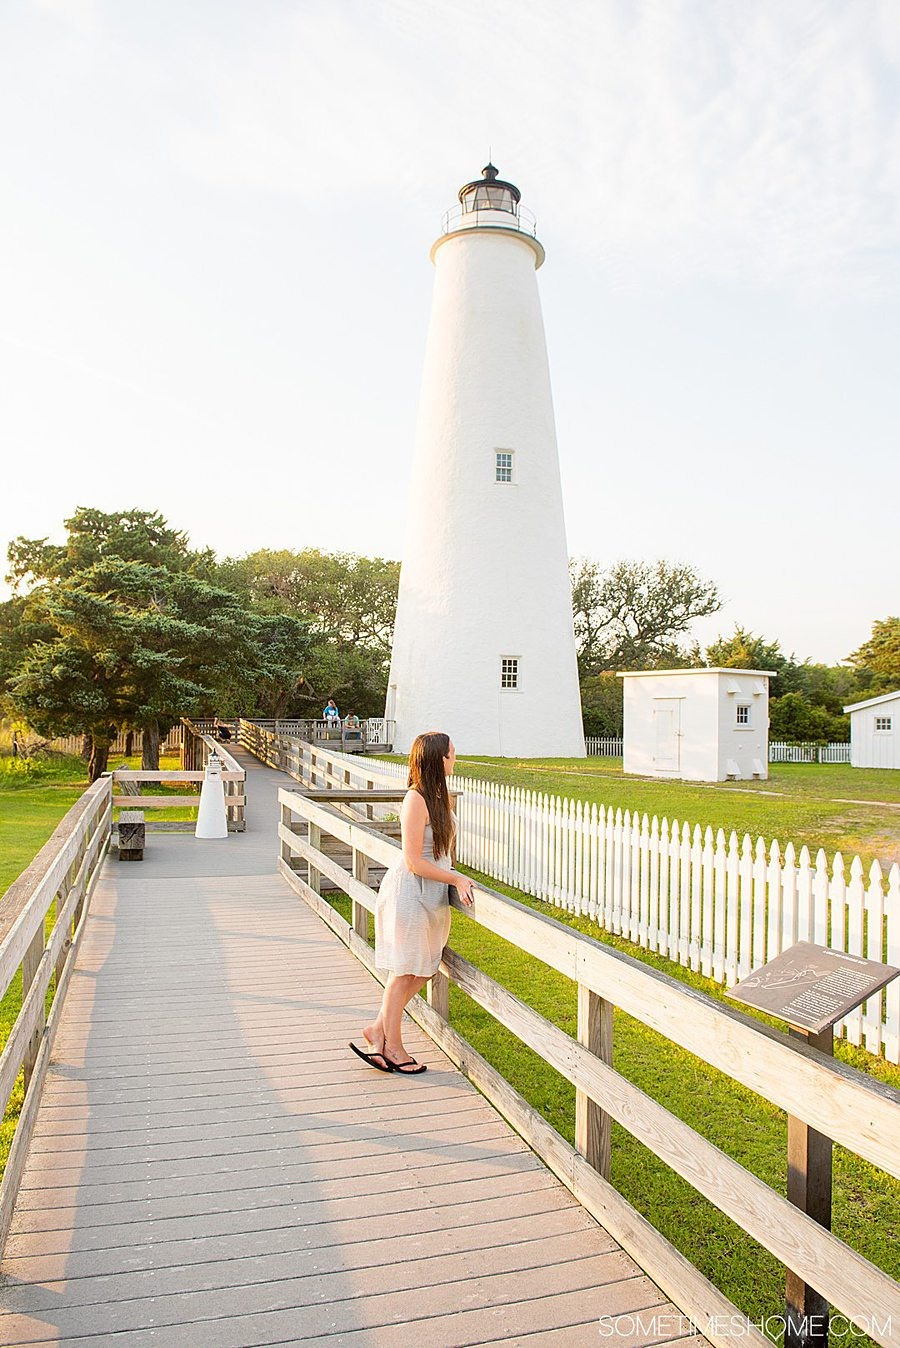 A woman in a dress in the distance looking at a small white lighthouse behind her with green grass and green trees around it, and fences.